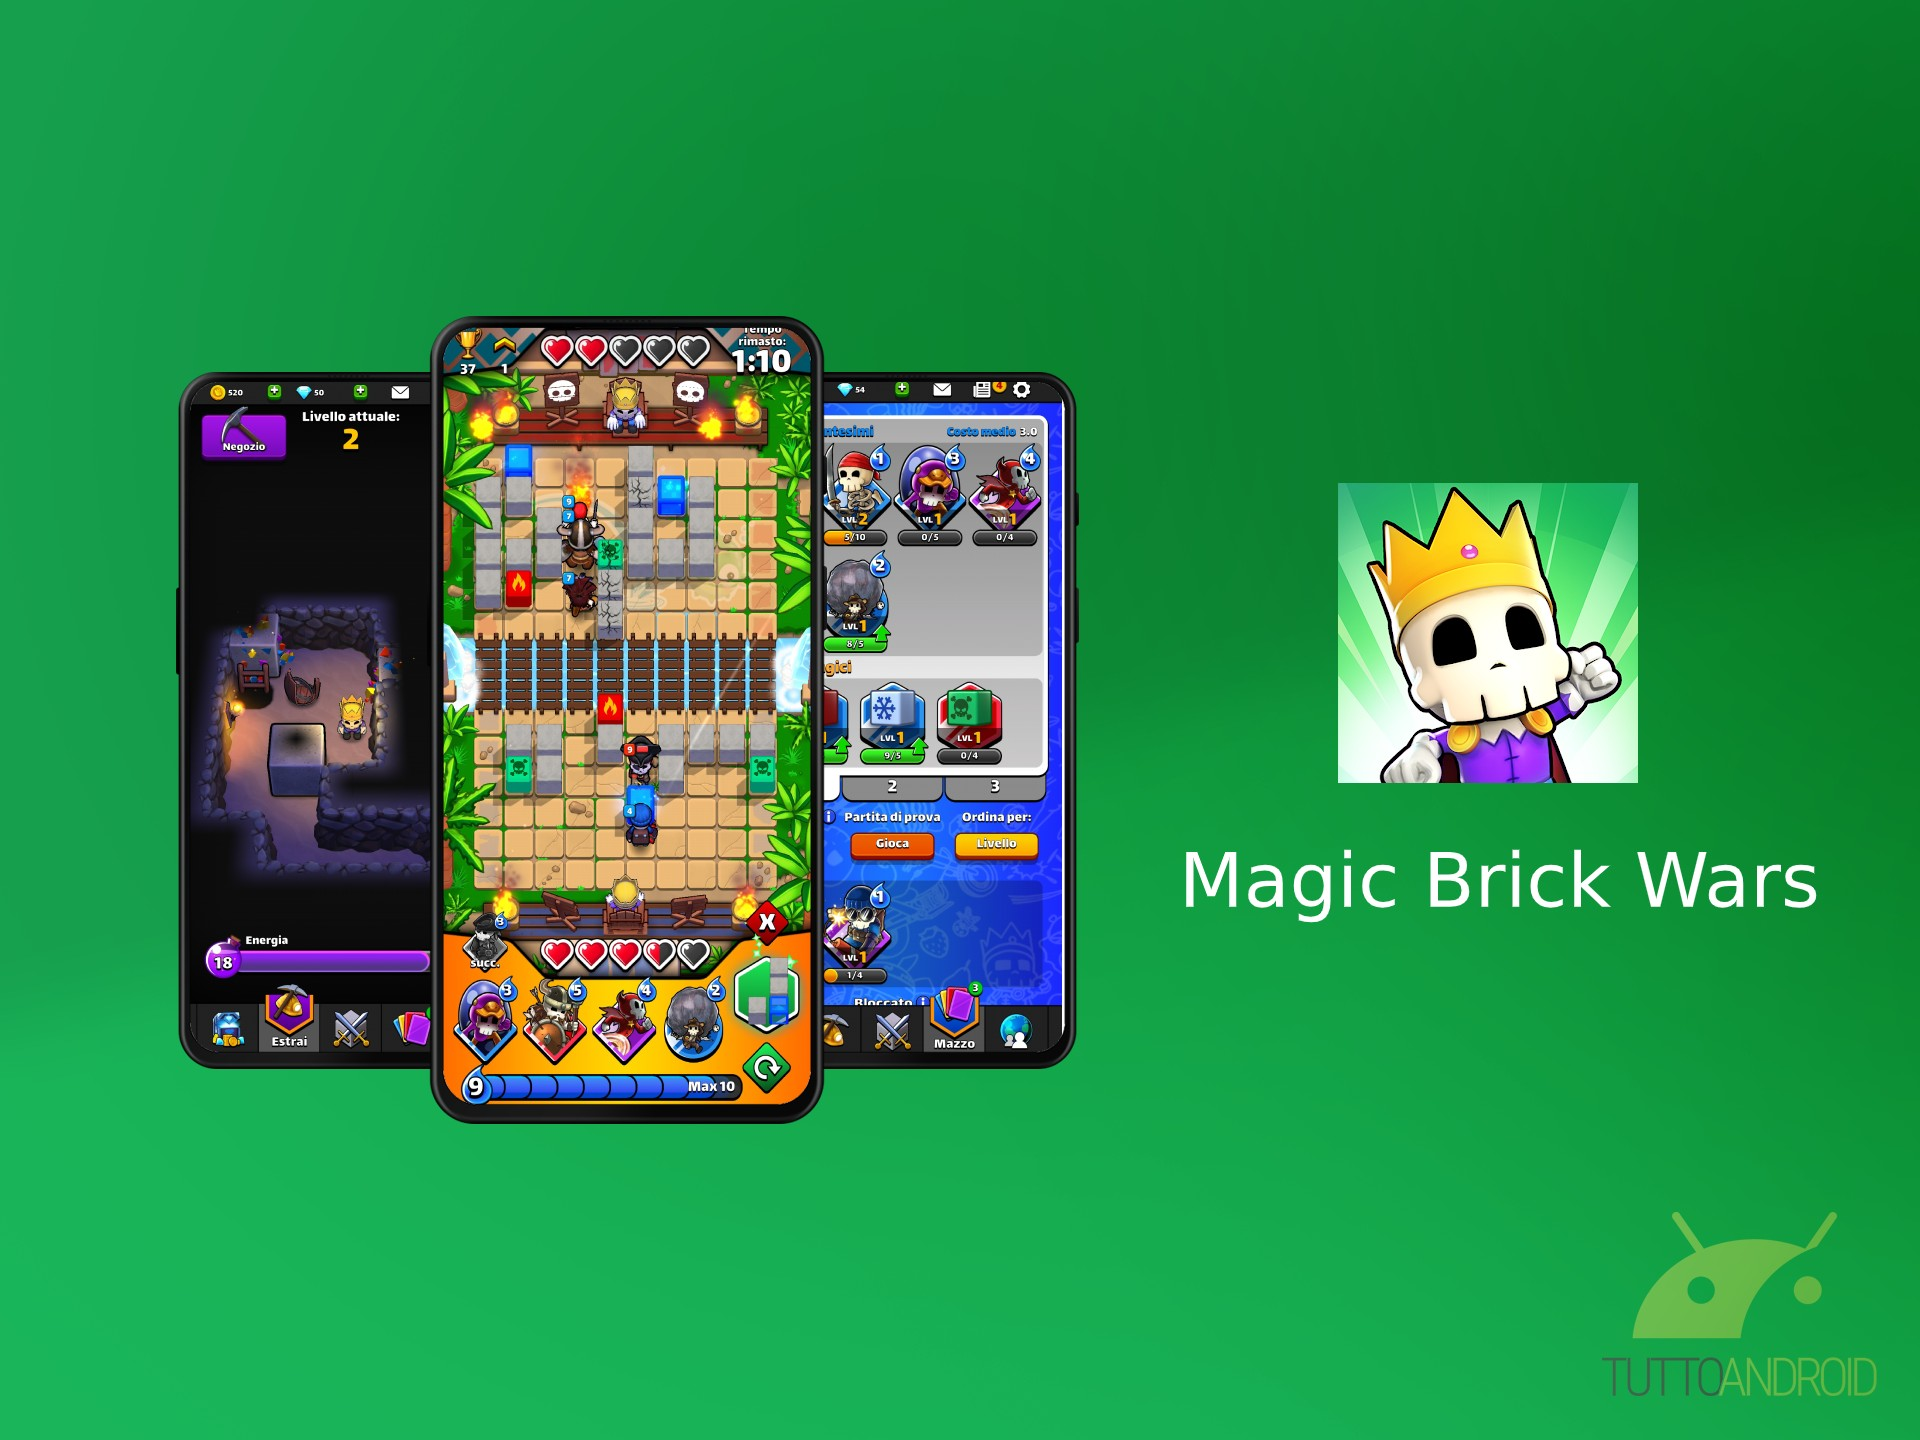 Magic Brick Wars aggiunge varianti entusiasmanti al gameplay